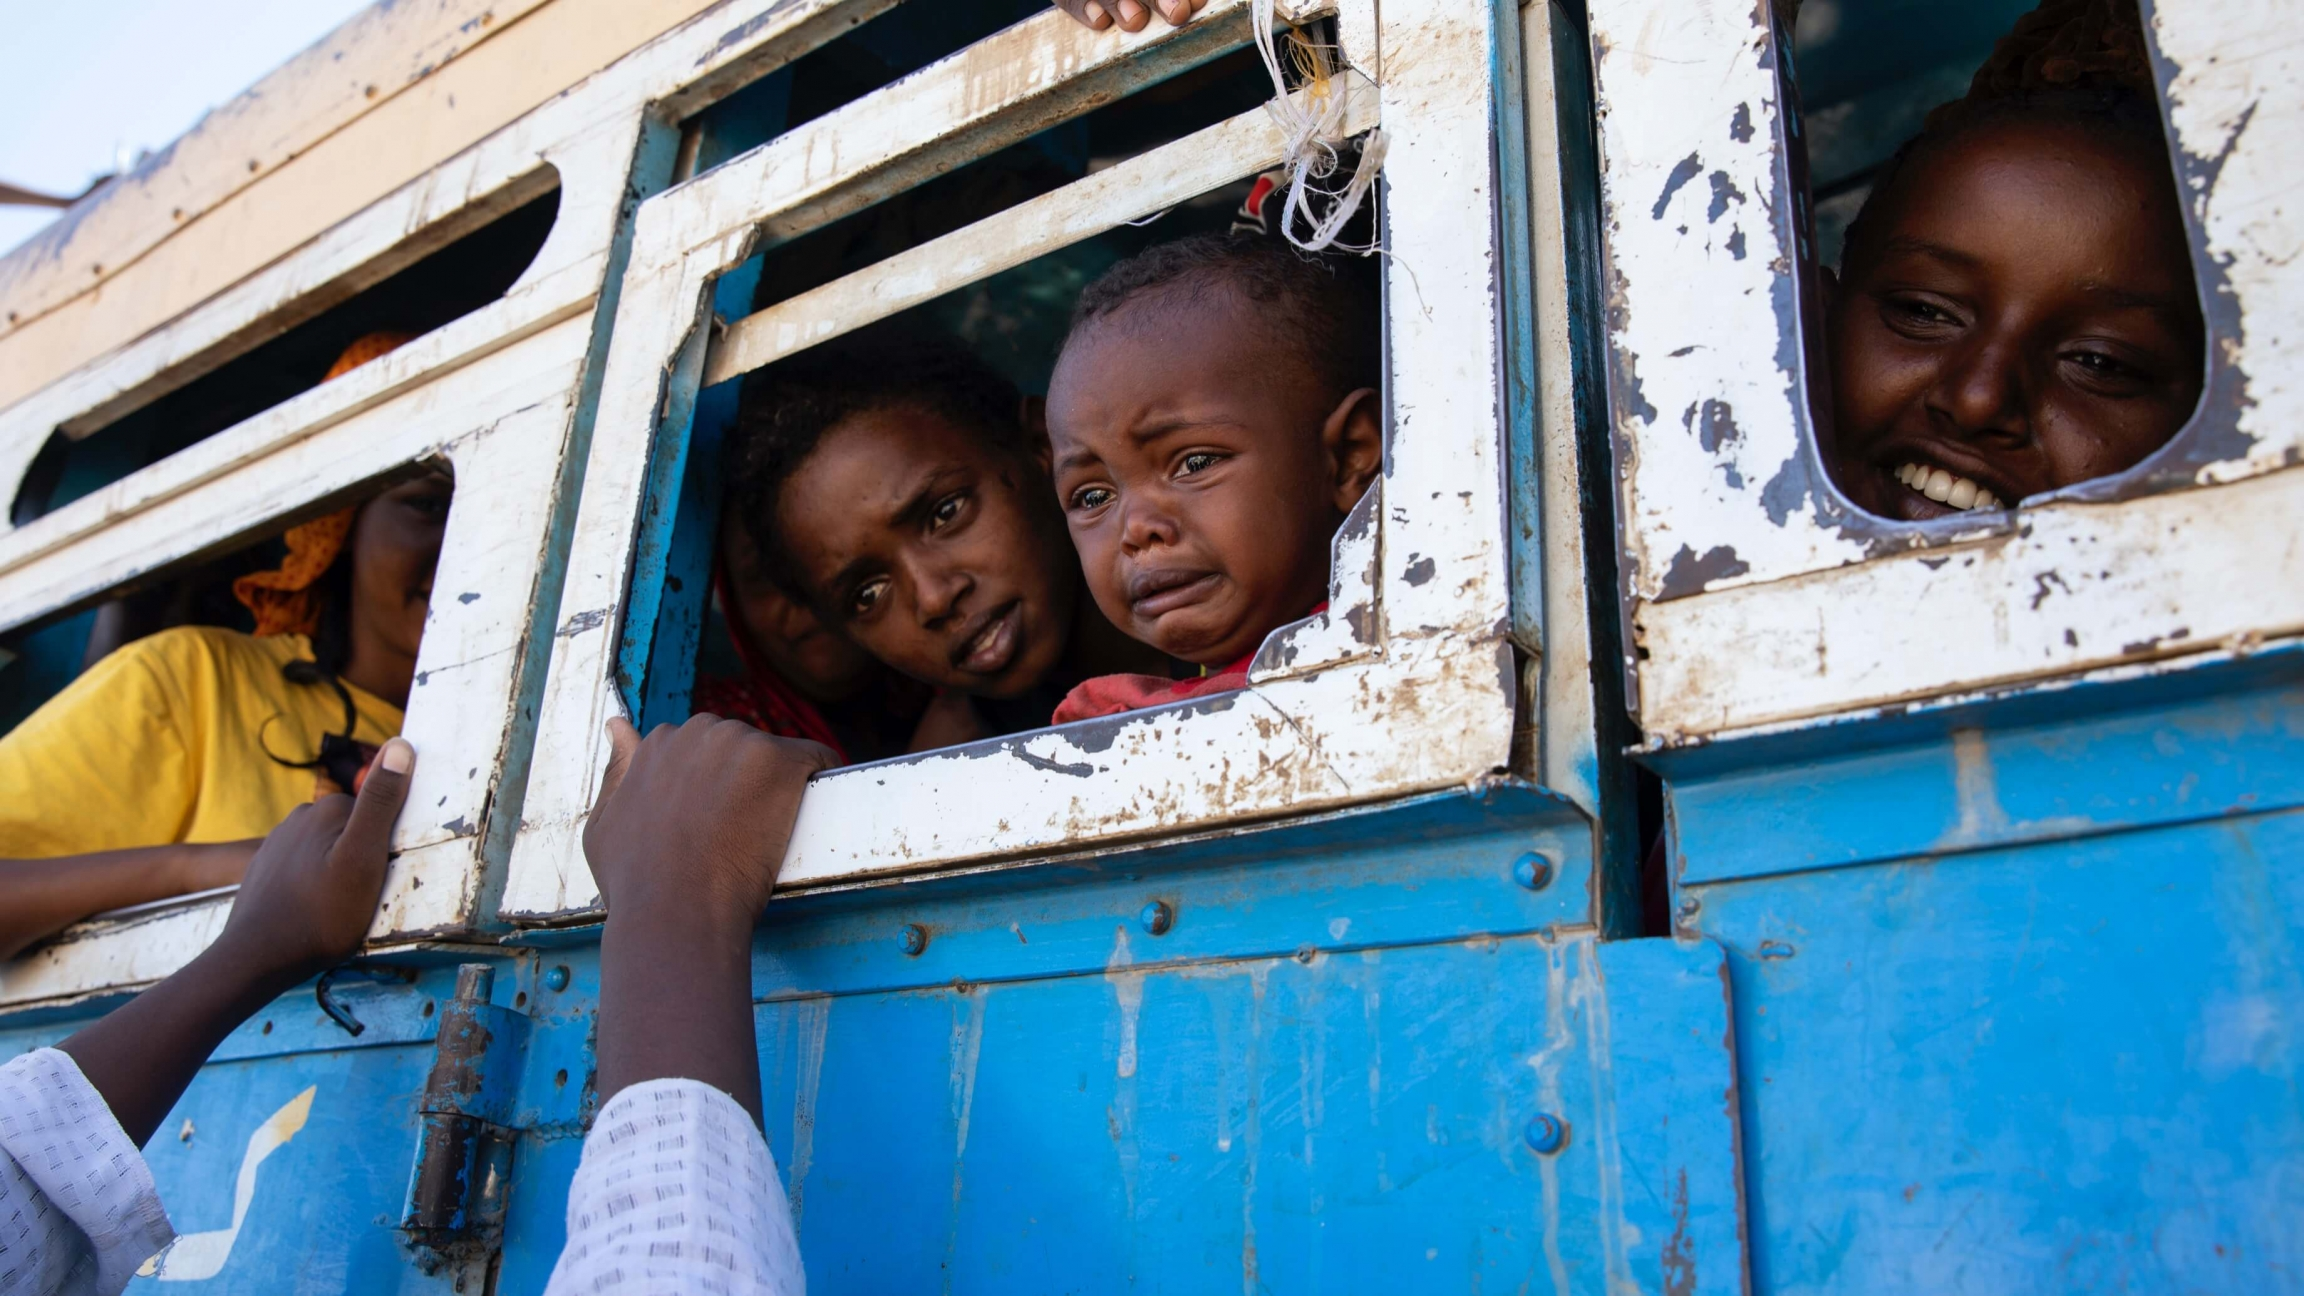 Three Ethiopian travelers sit inside a blue bus with white-bordered windows, saying goodbye to someone whose arms rest on the window frame.